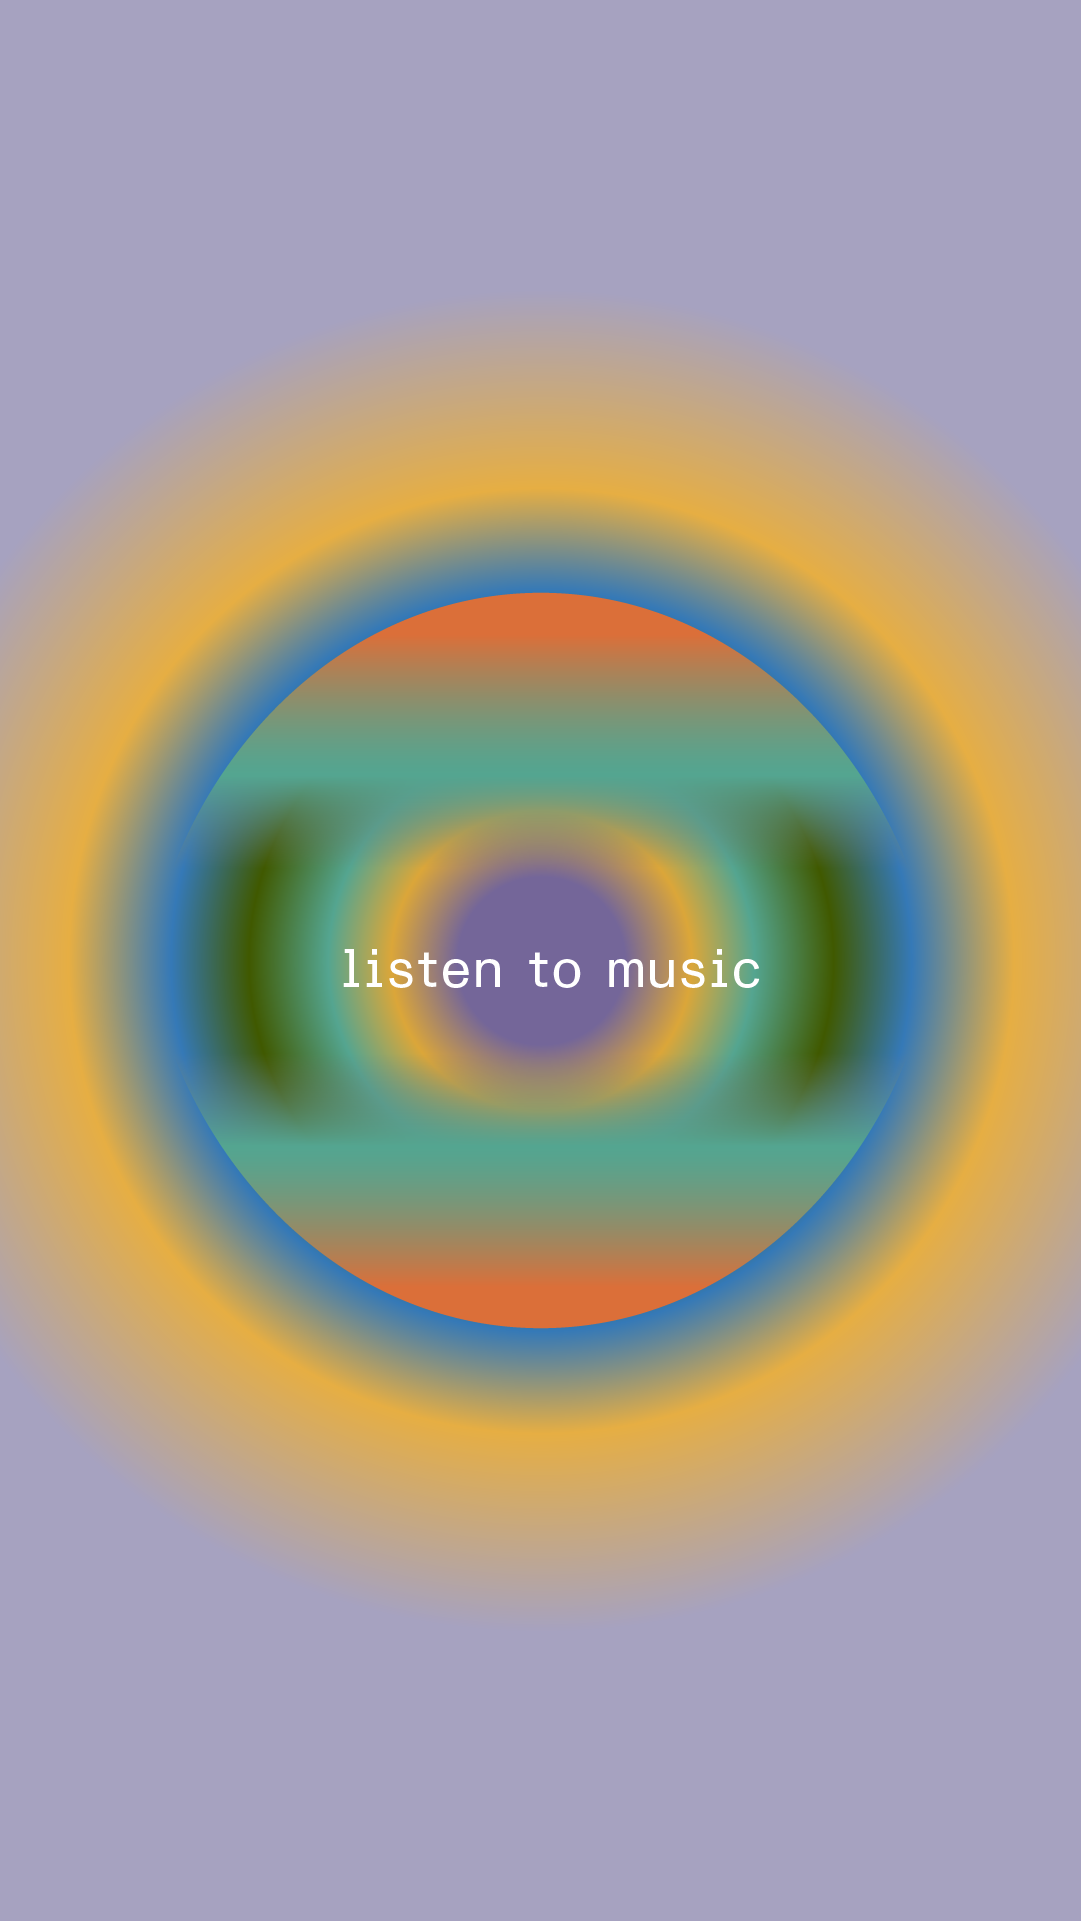 Music healing-front_VEDROS